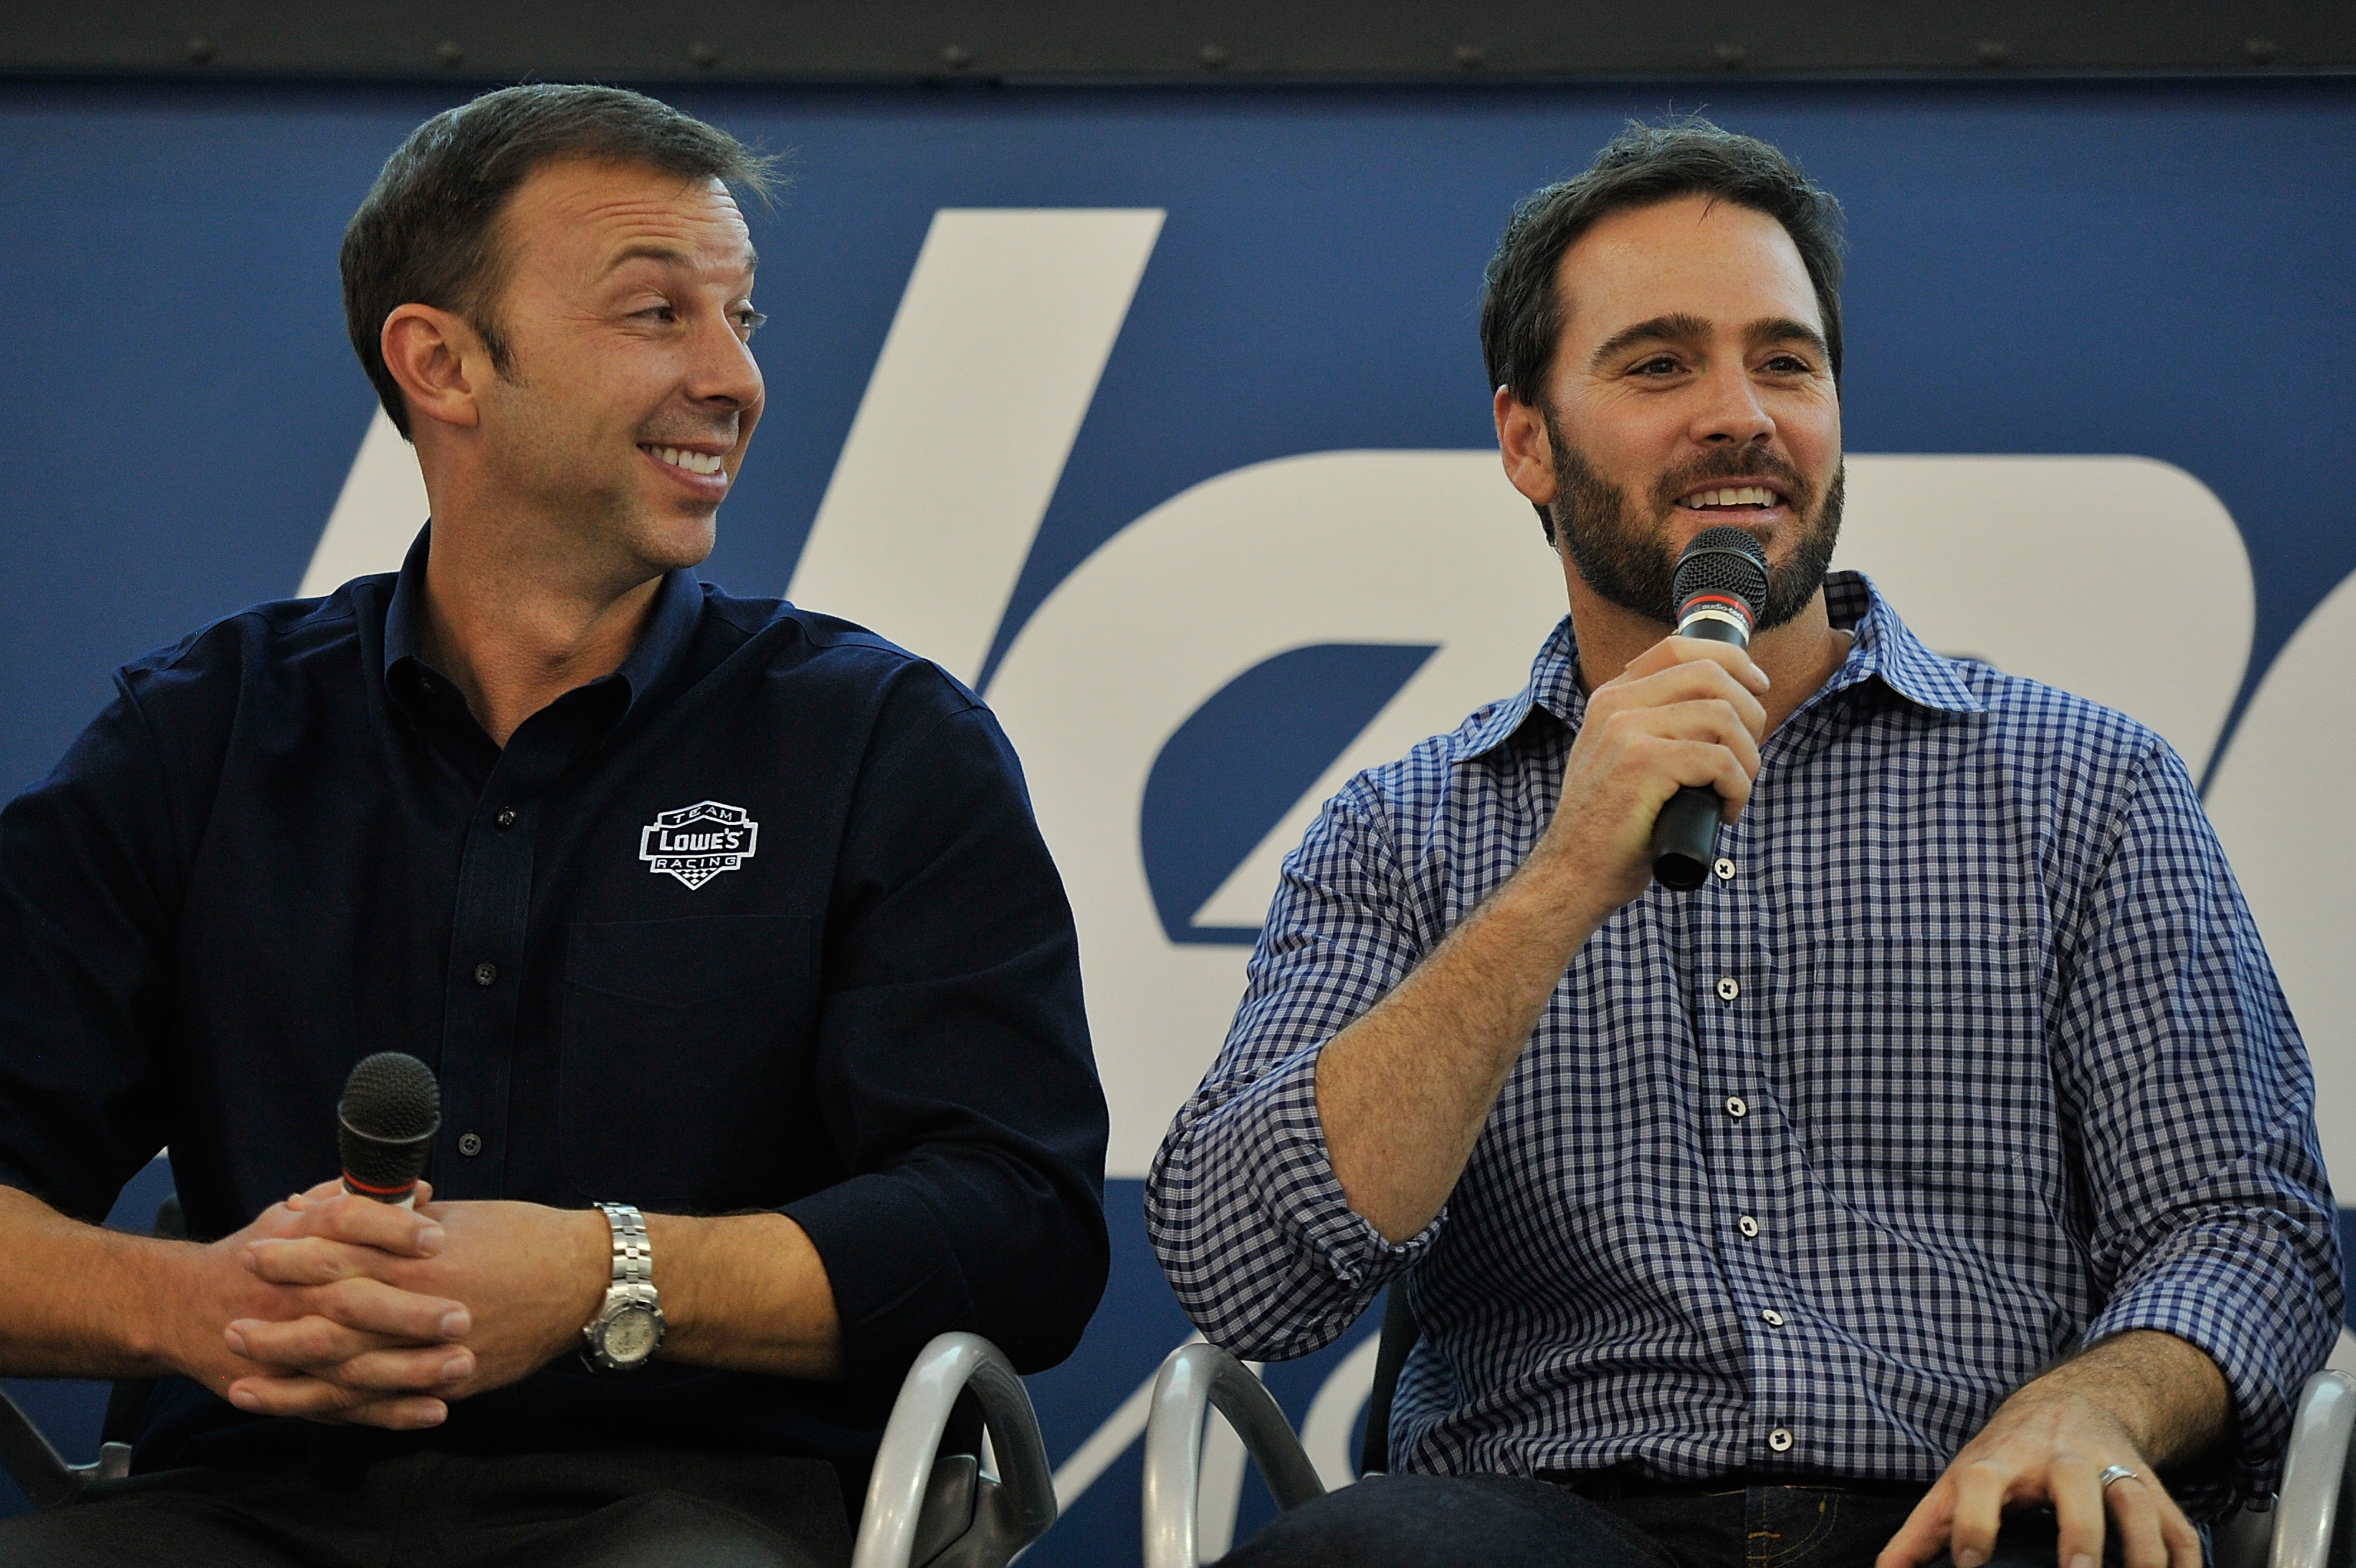 Chad-Knaus-and-Jimmie-Johnson-wallpaper-wp3004270